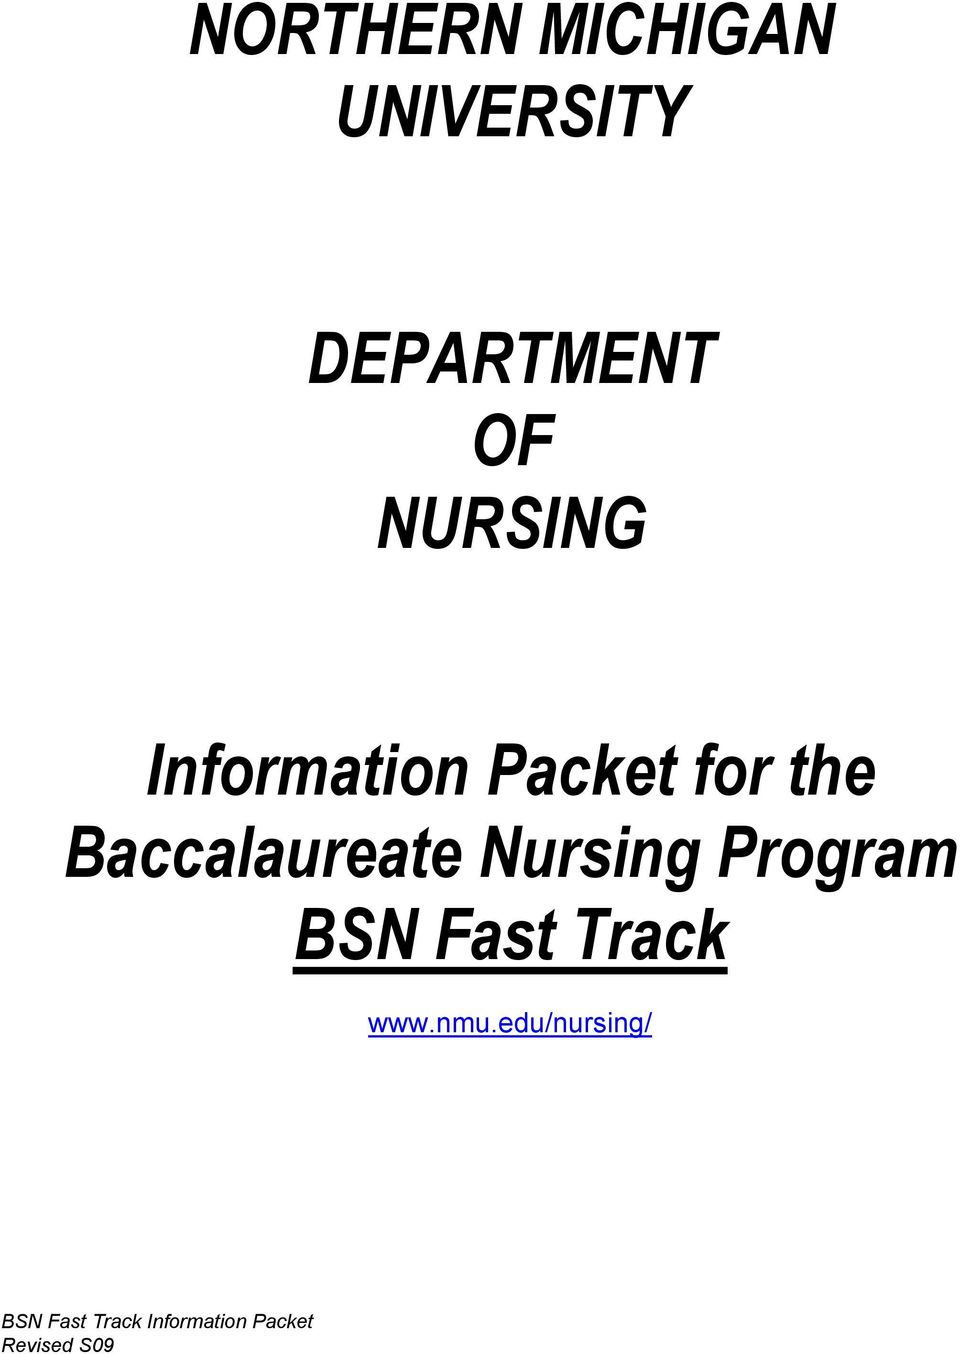 Packet for the Baccalaureate Nursing